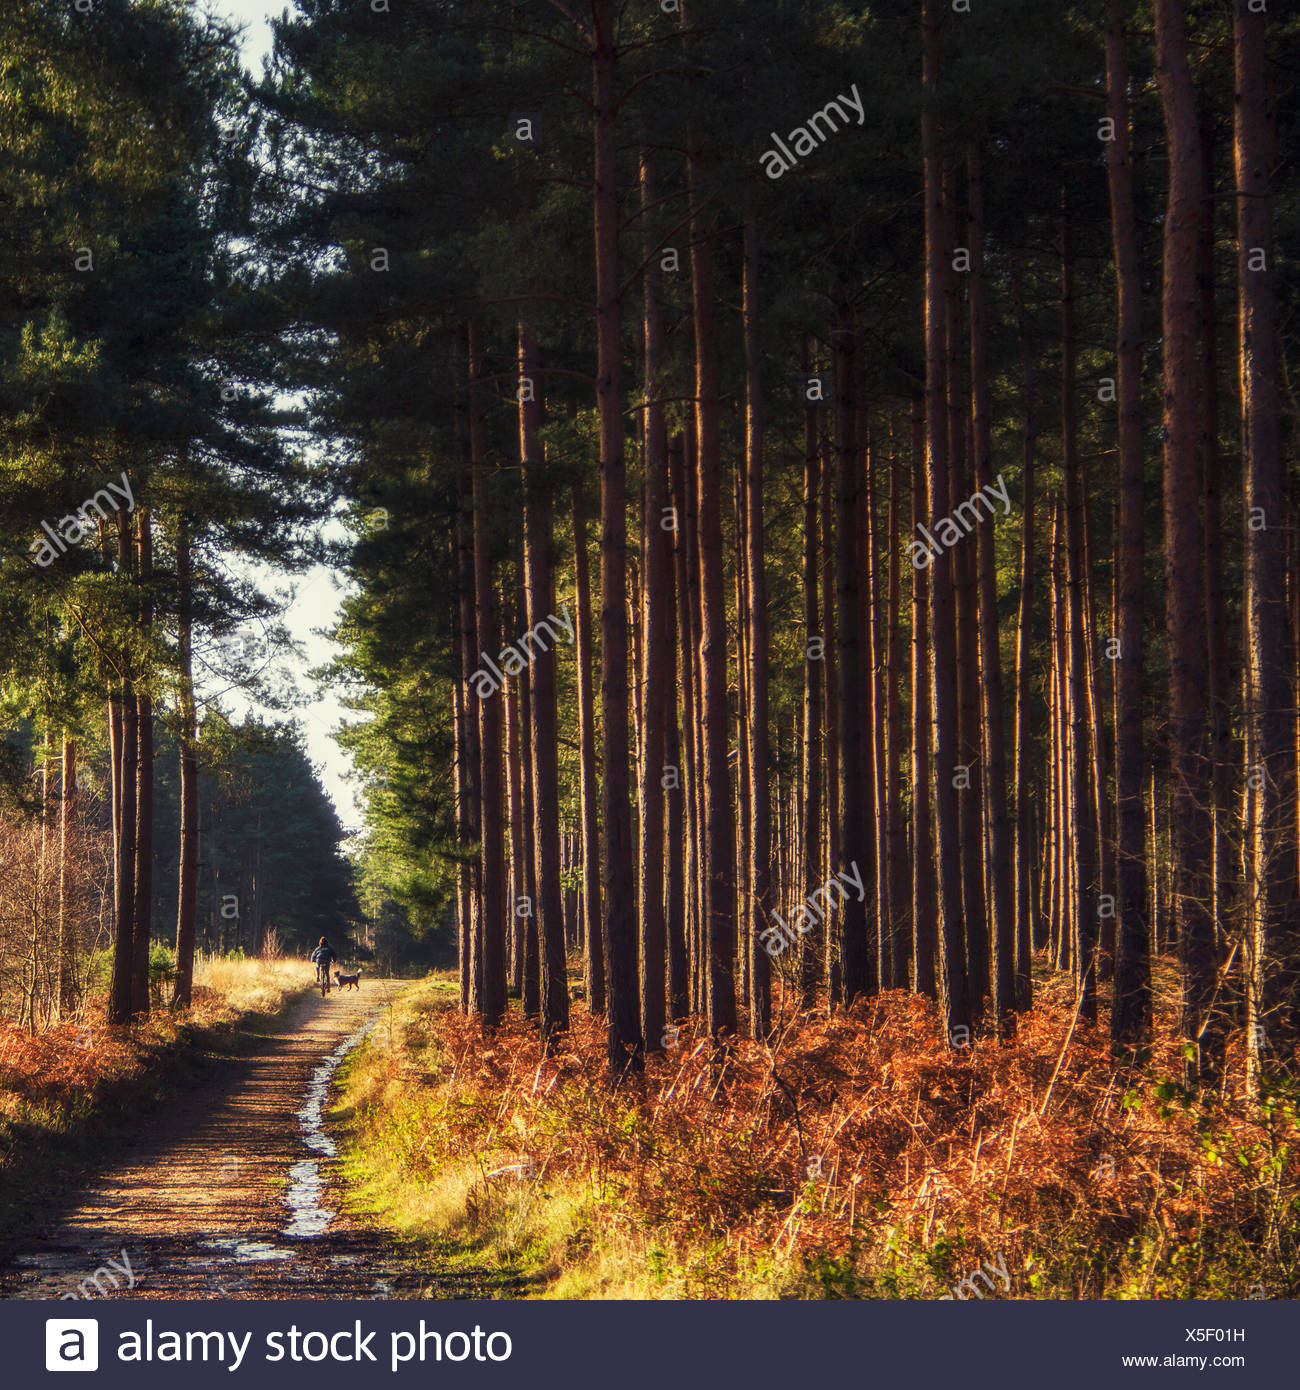 Tall trees along dirt road - Stock Image